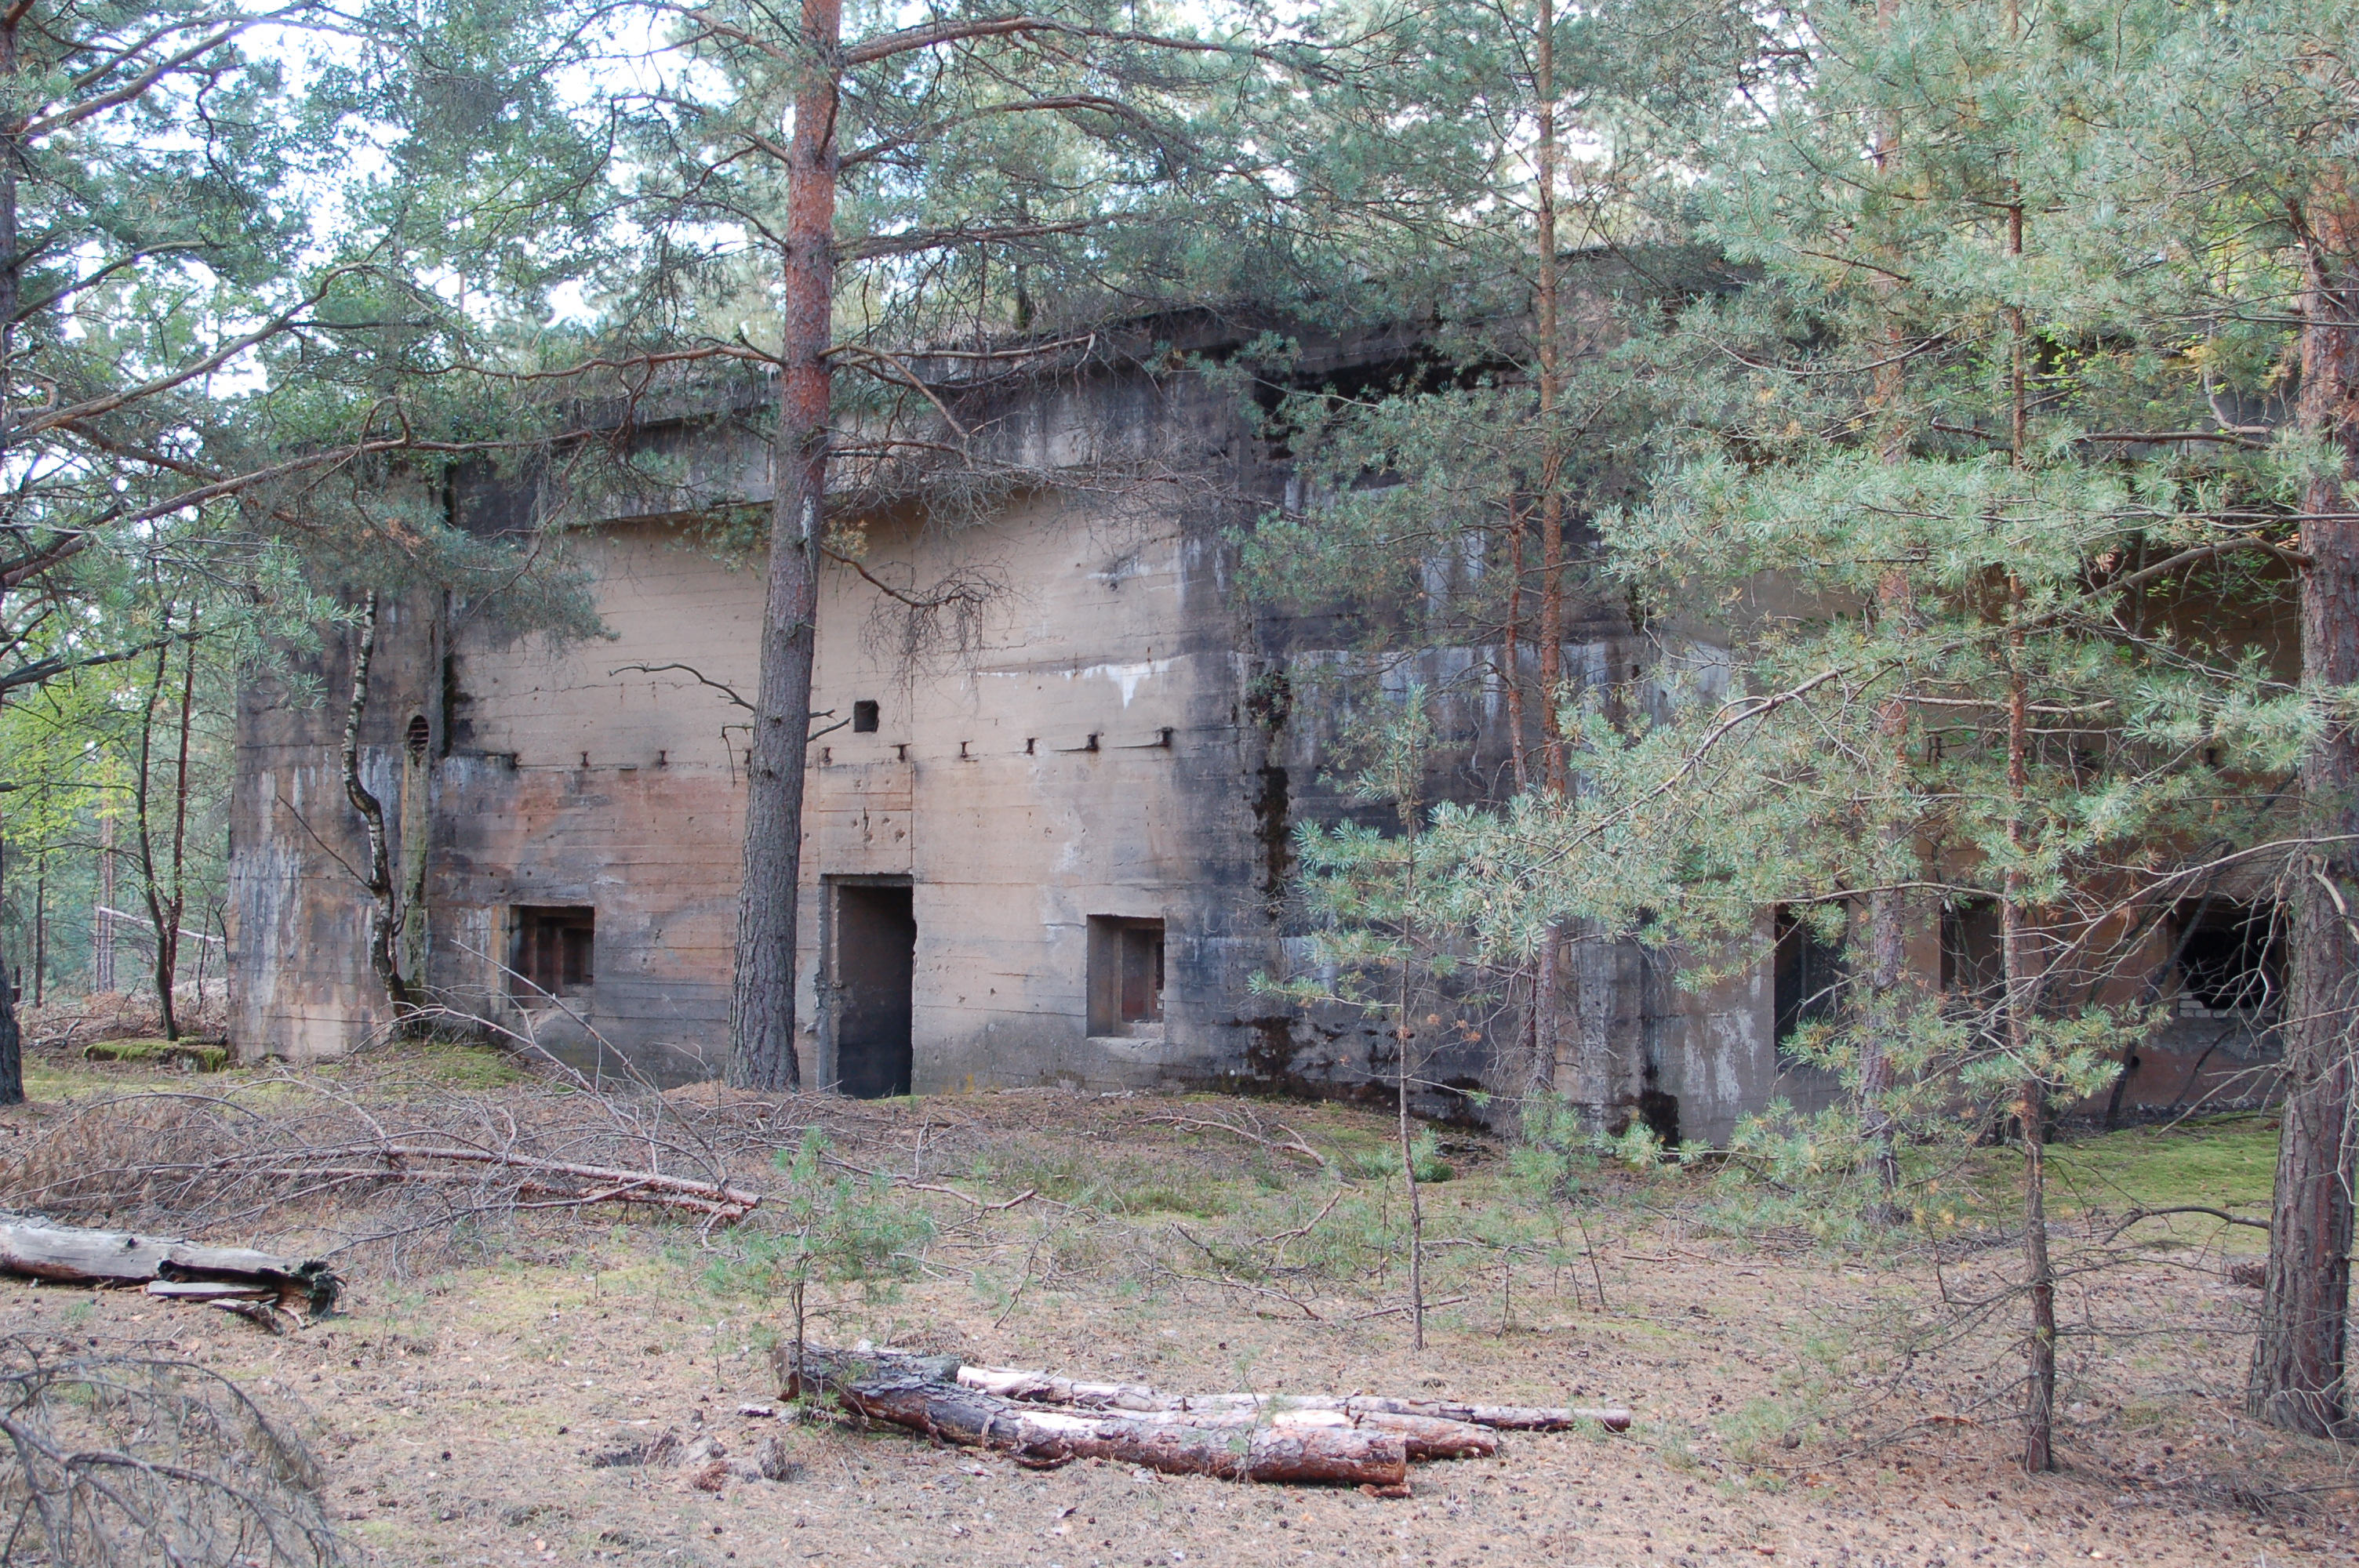 Abandoned Places In The World File German Bunker From Ww2 Near Szprotawa By Maciej